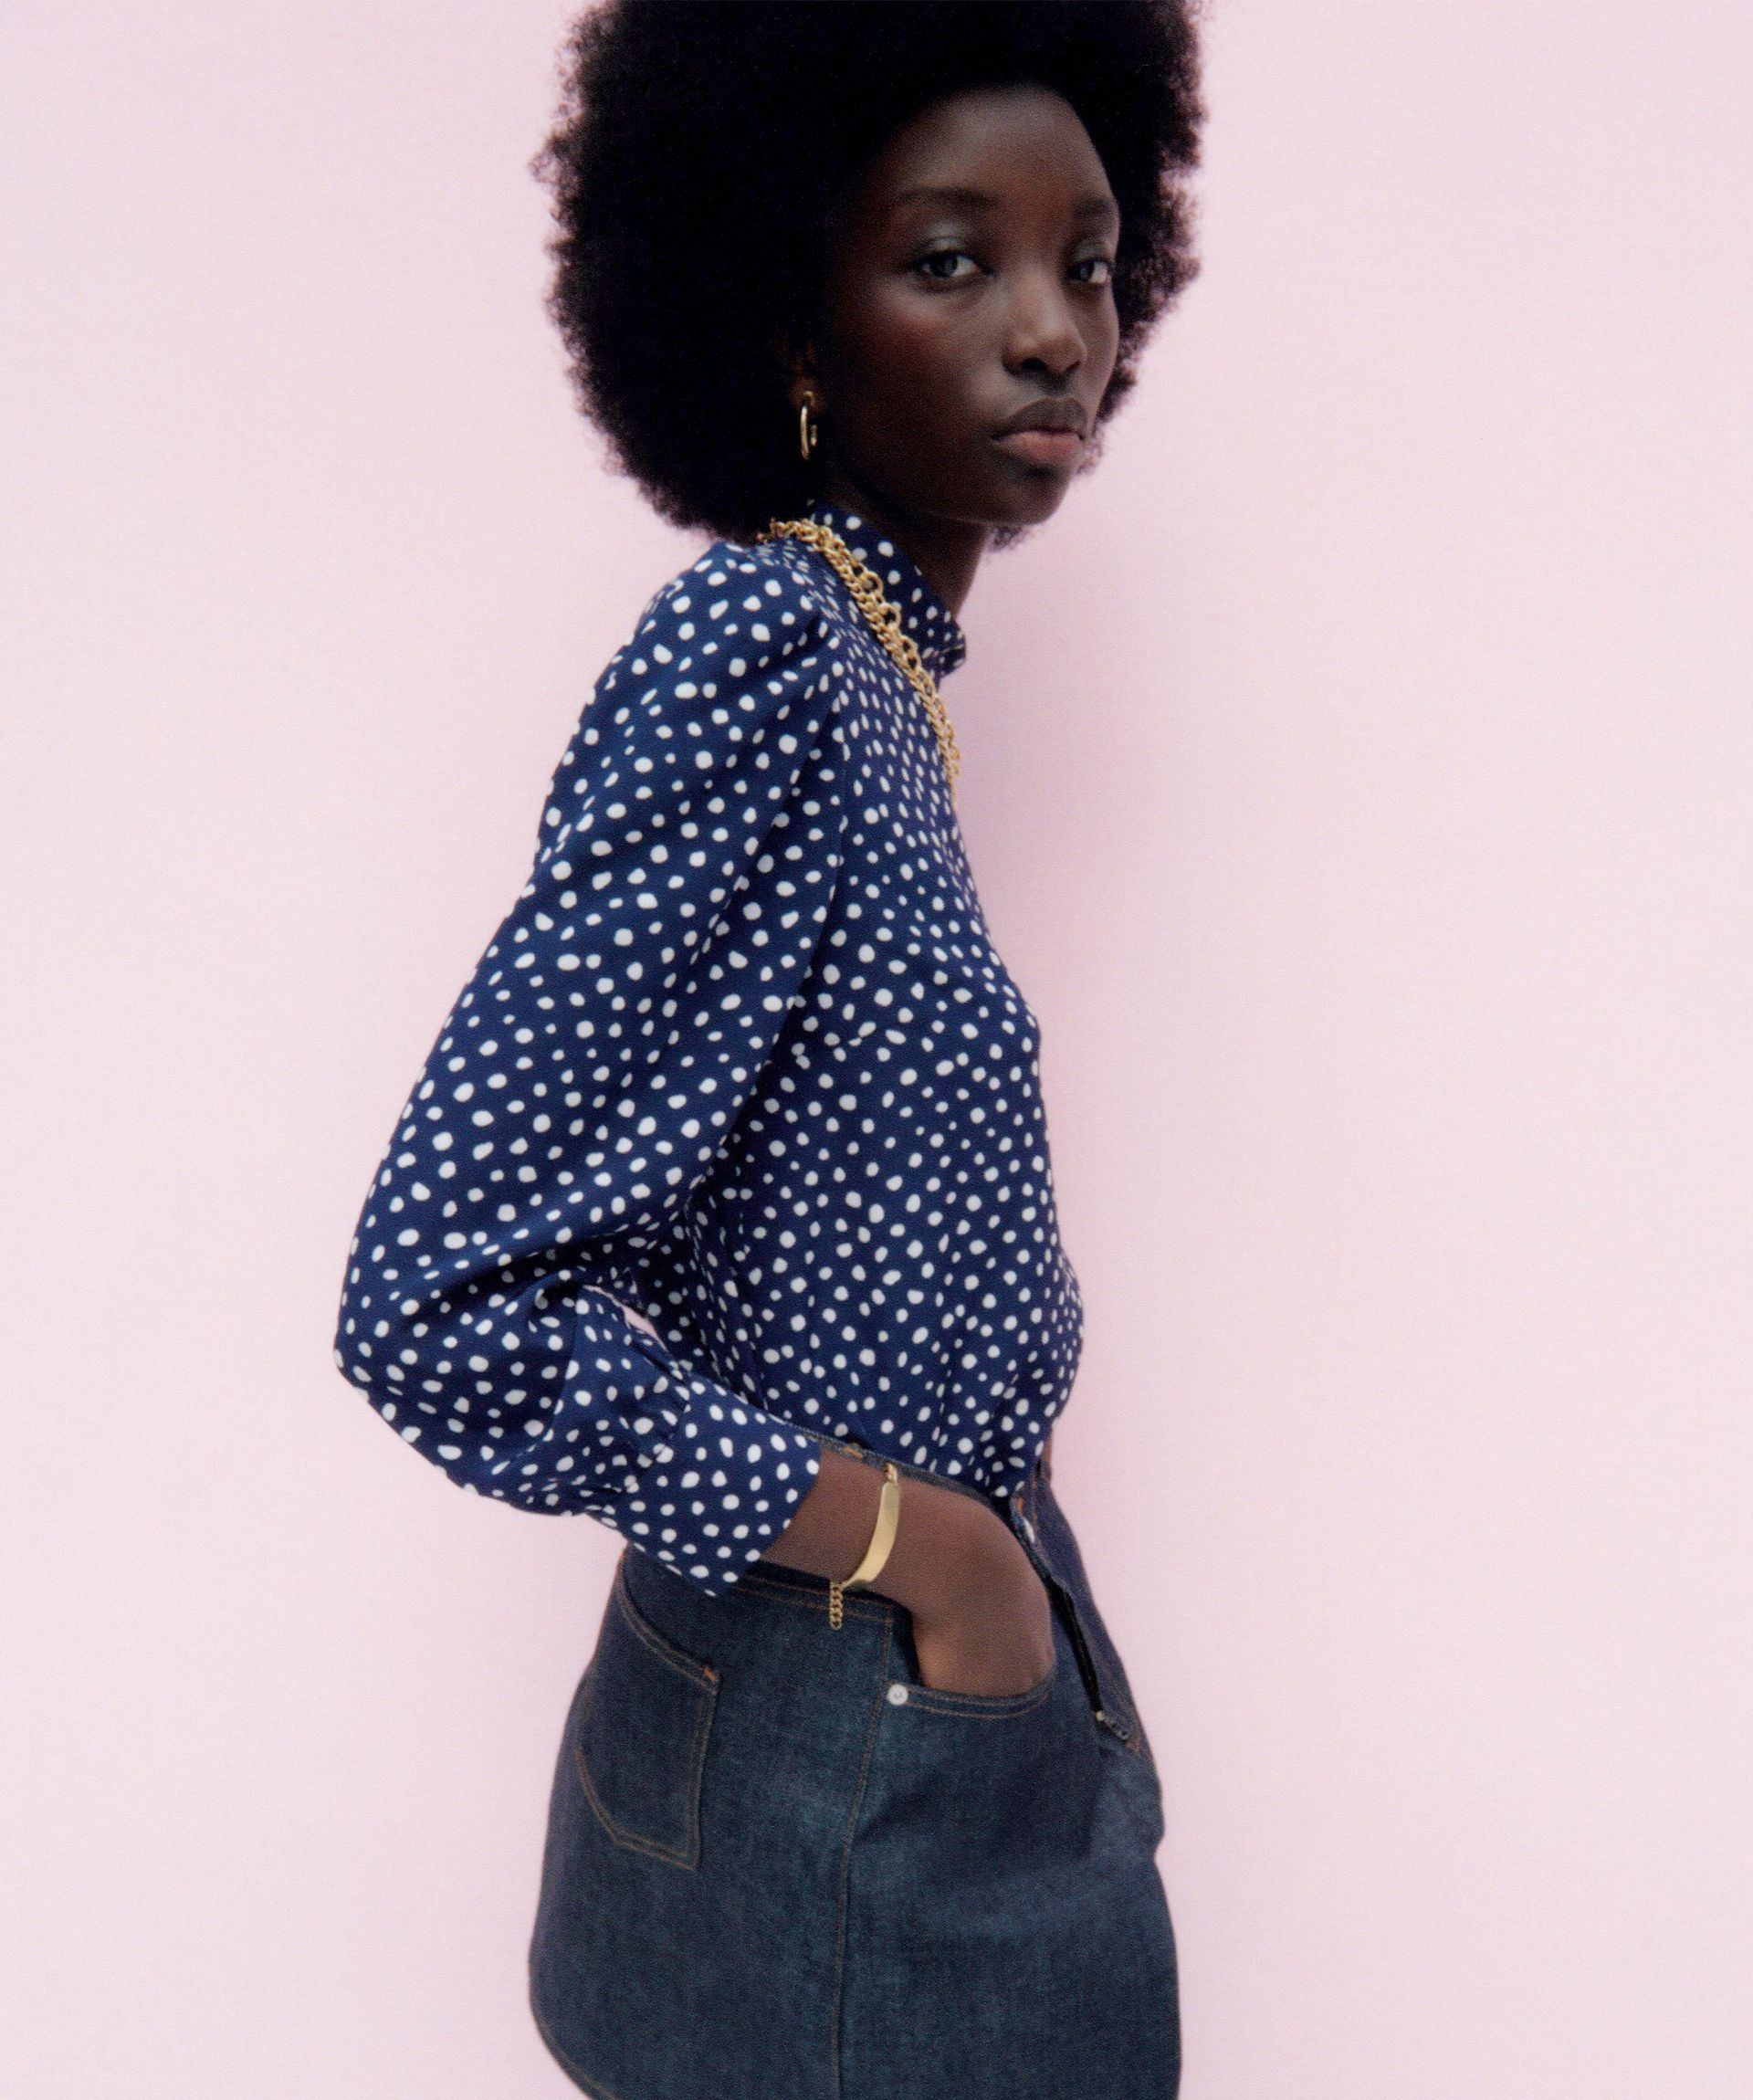 NEXT<BR/>BLOUSES AND SHIRTS